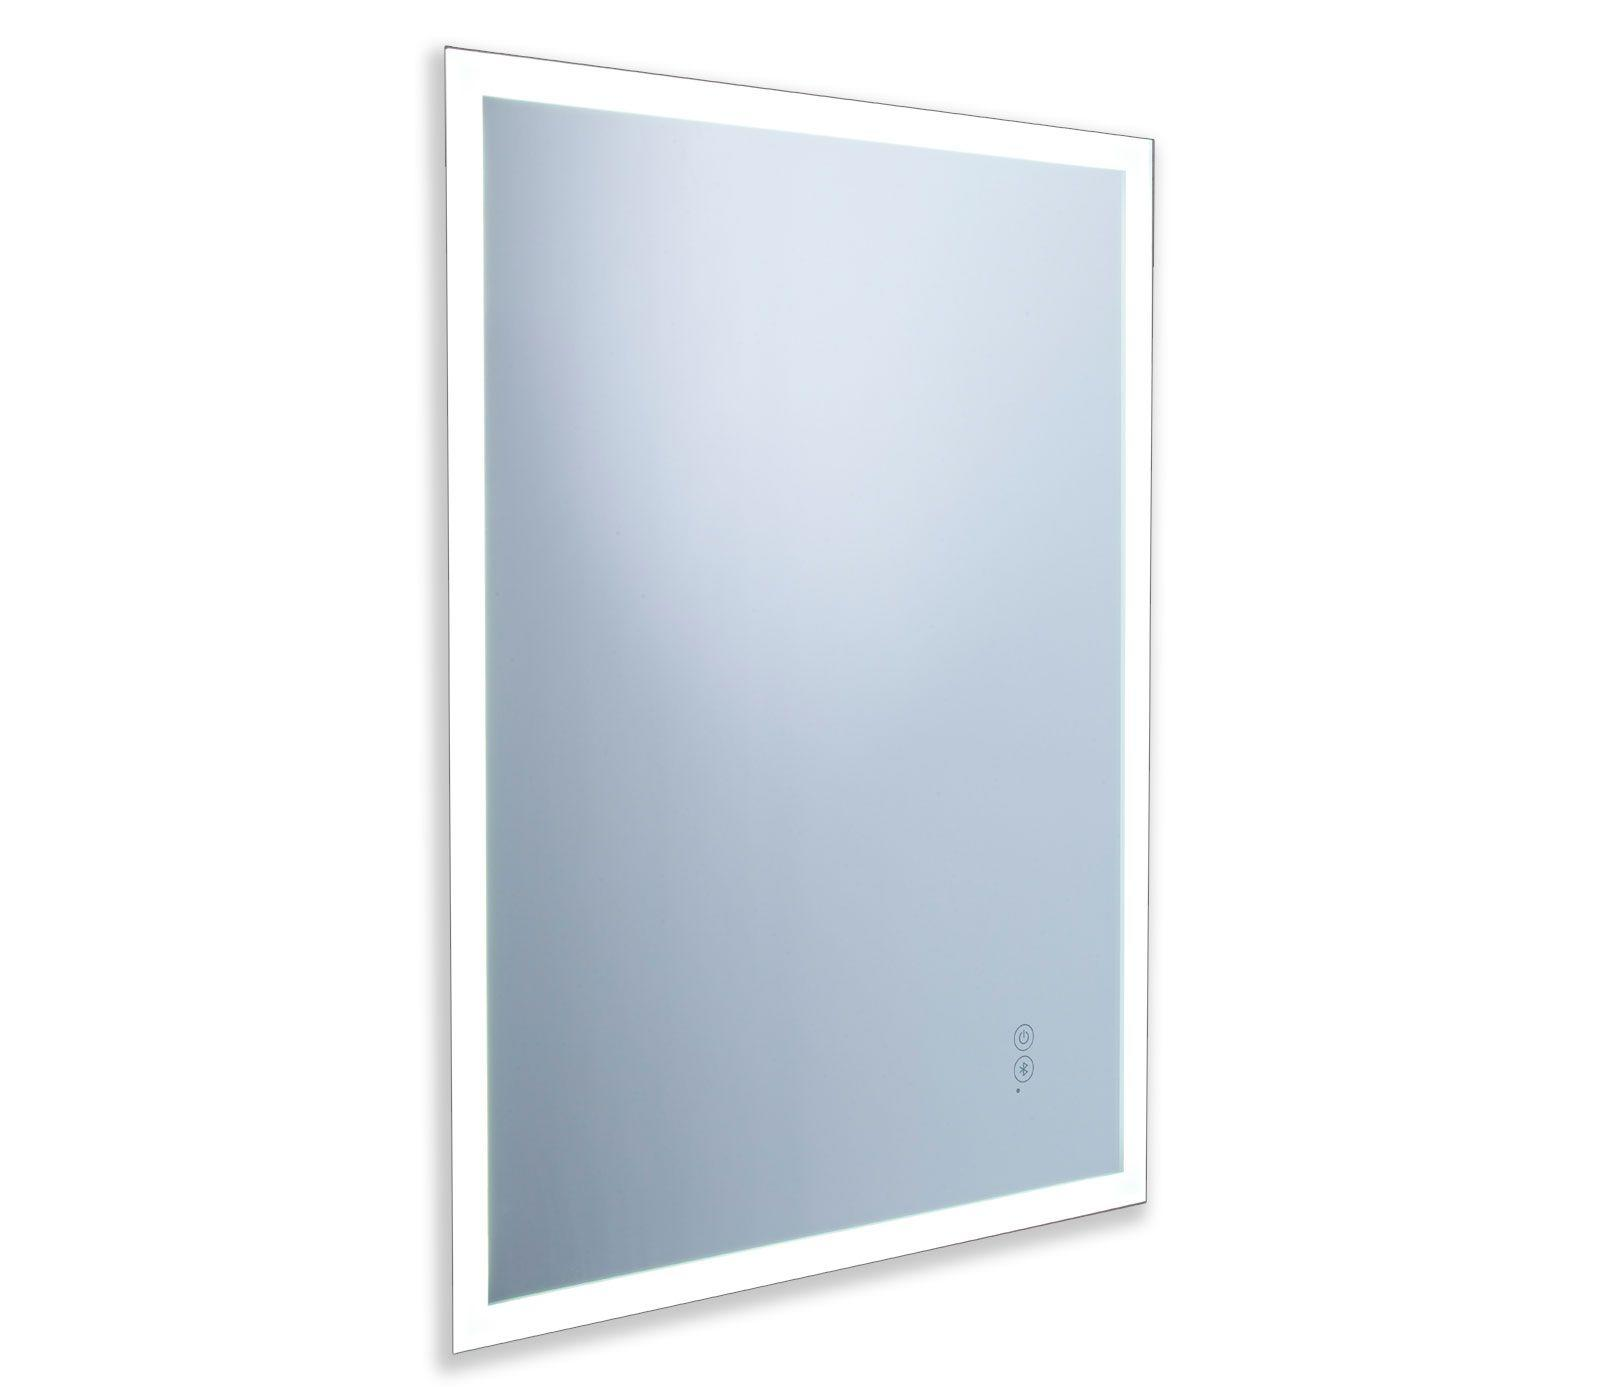 front view of forte Bluetooth mirror